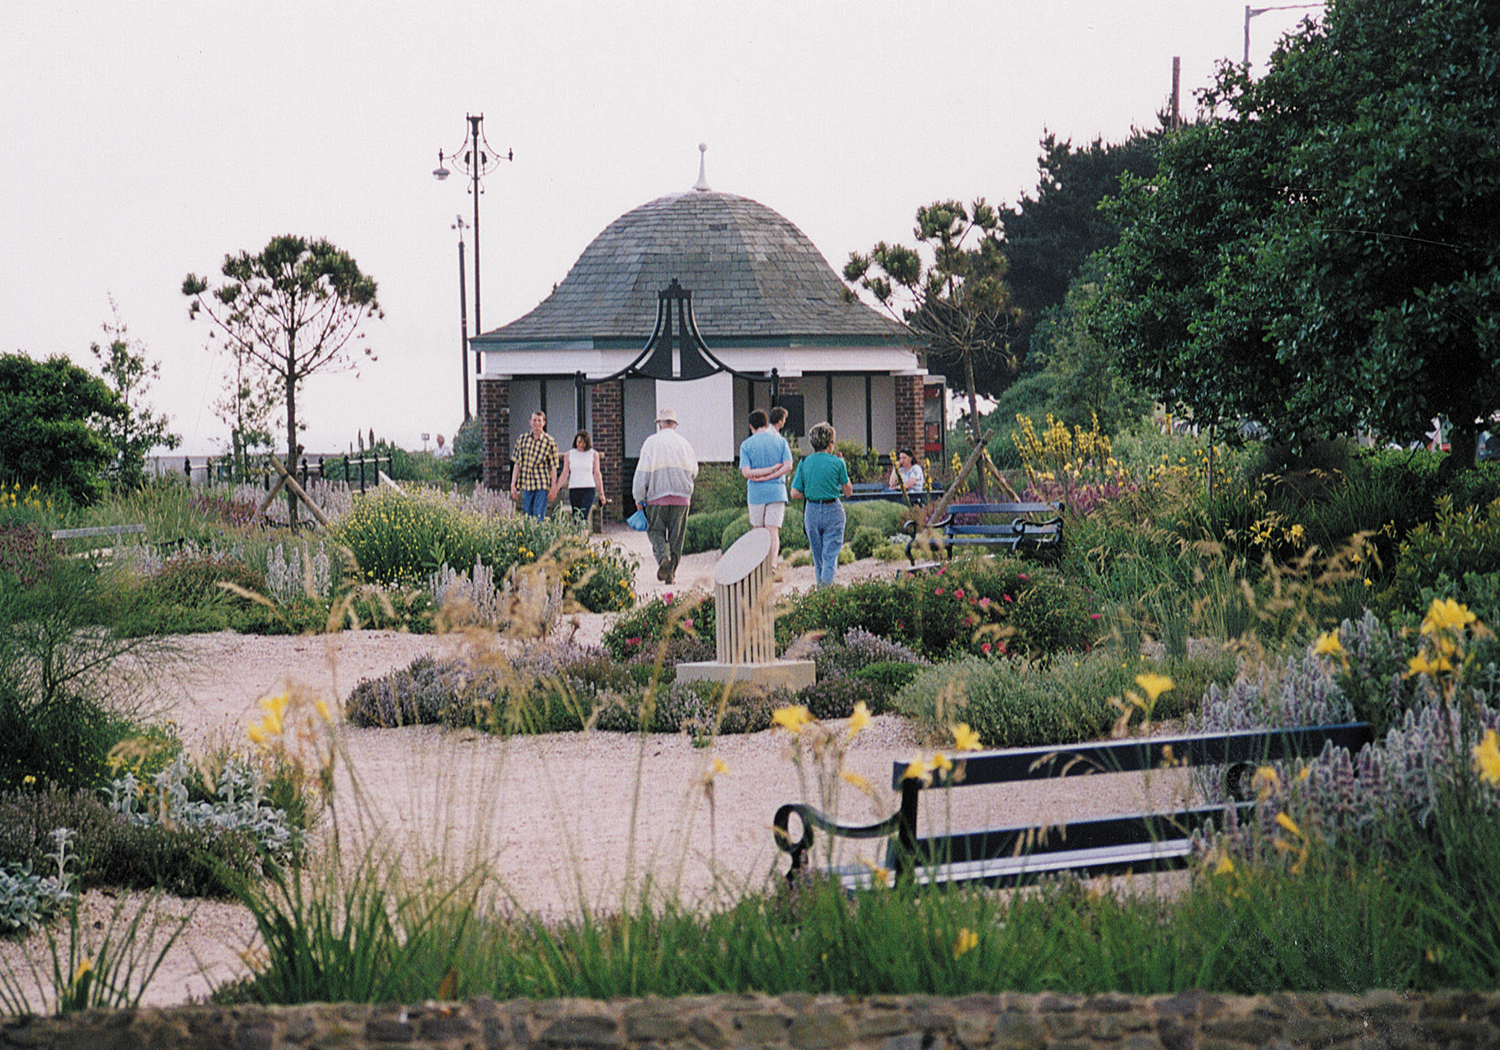 Projects-ParksPublicRealm-ClactonGardens-OpenGarden-1500x1050